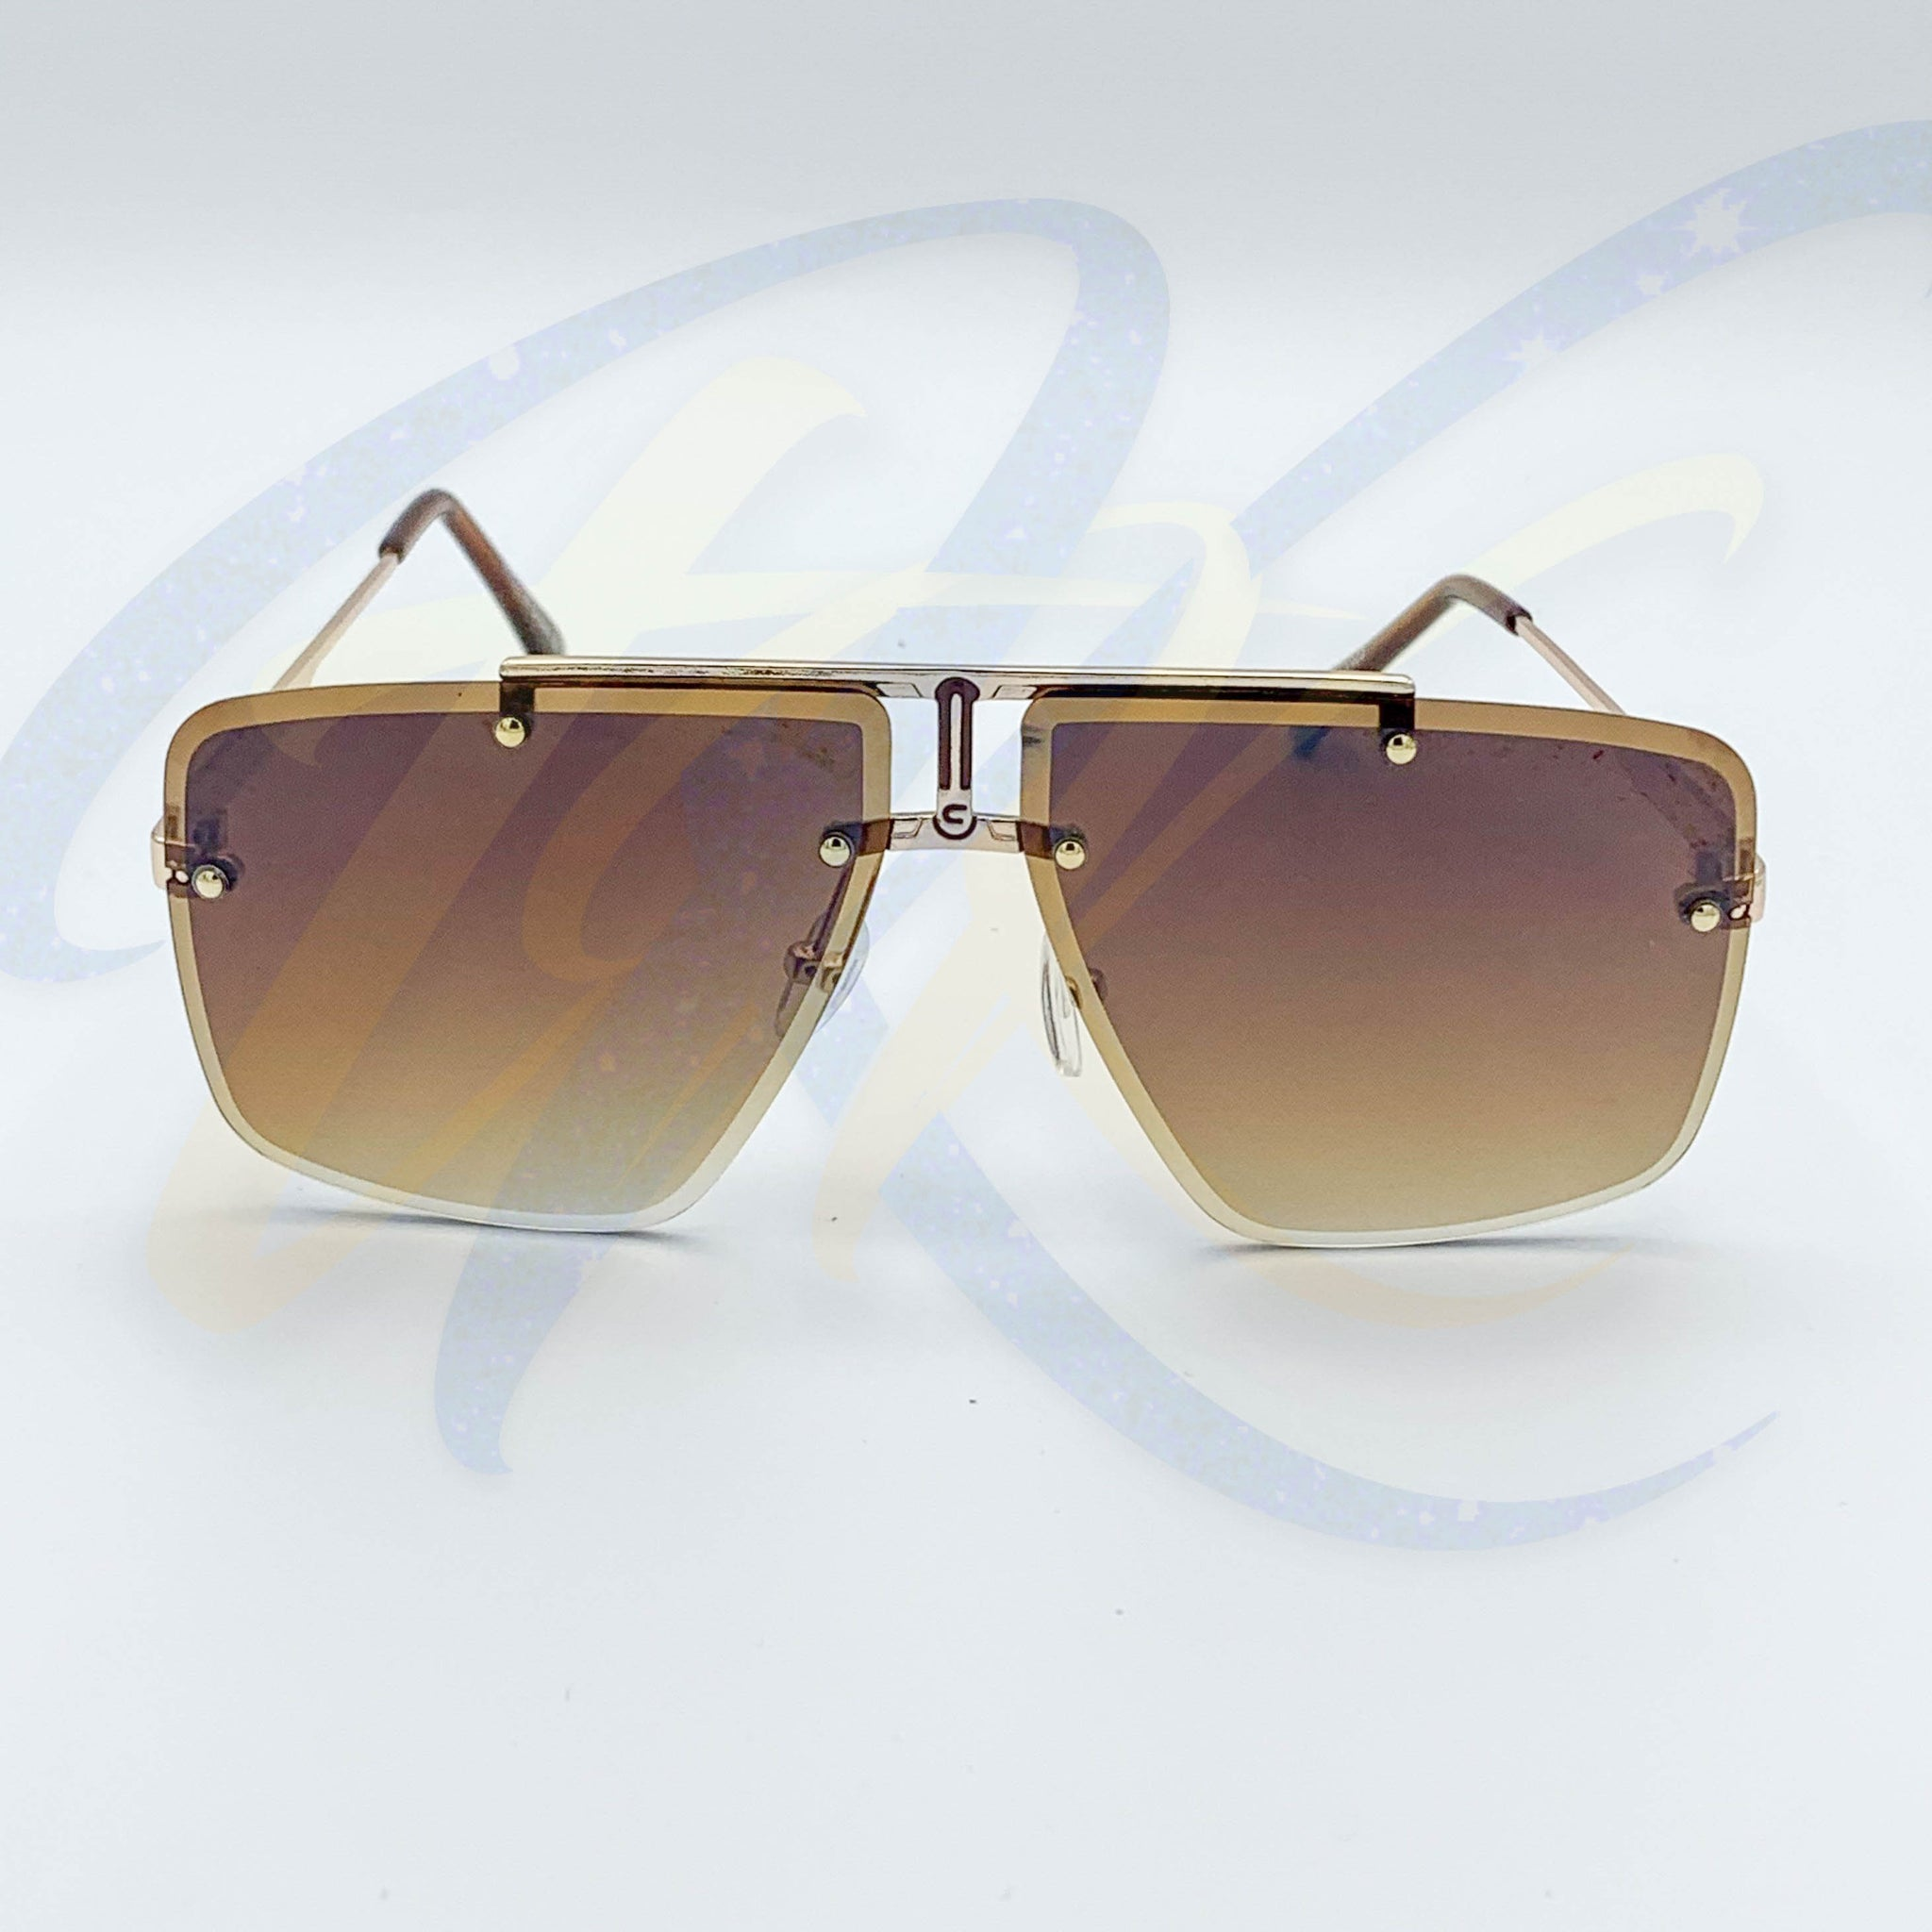 Mr. Cool - Brown on Brown - The Kaya Kollection  -  - The Kaya Kollection